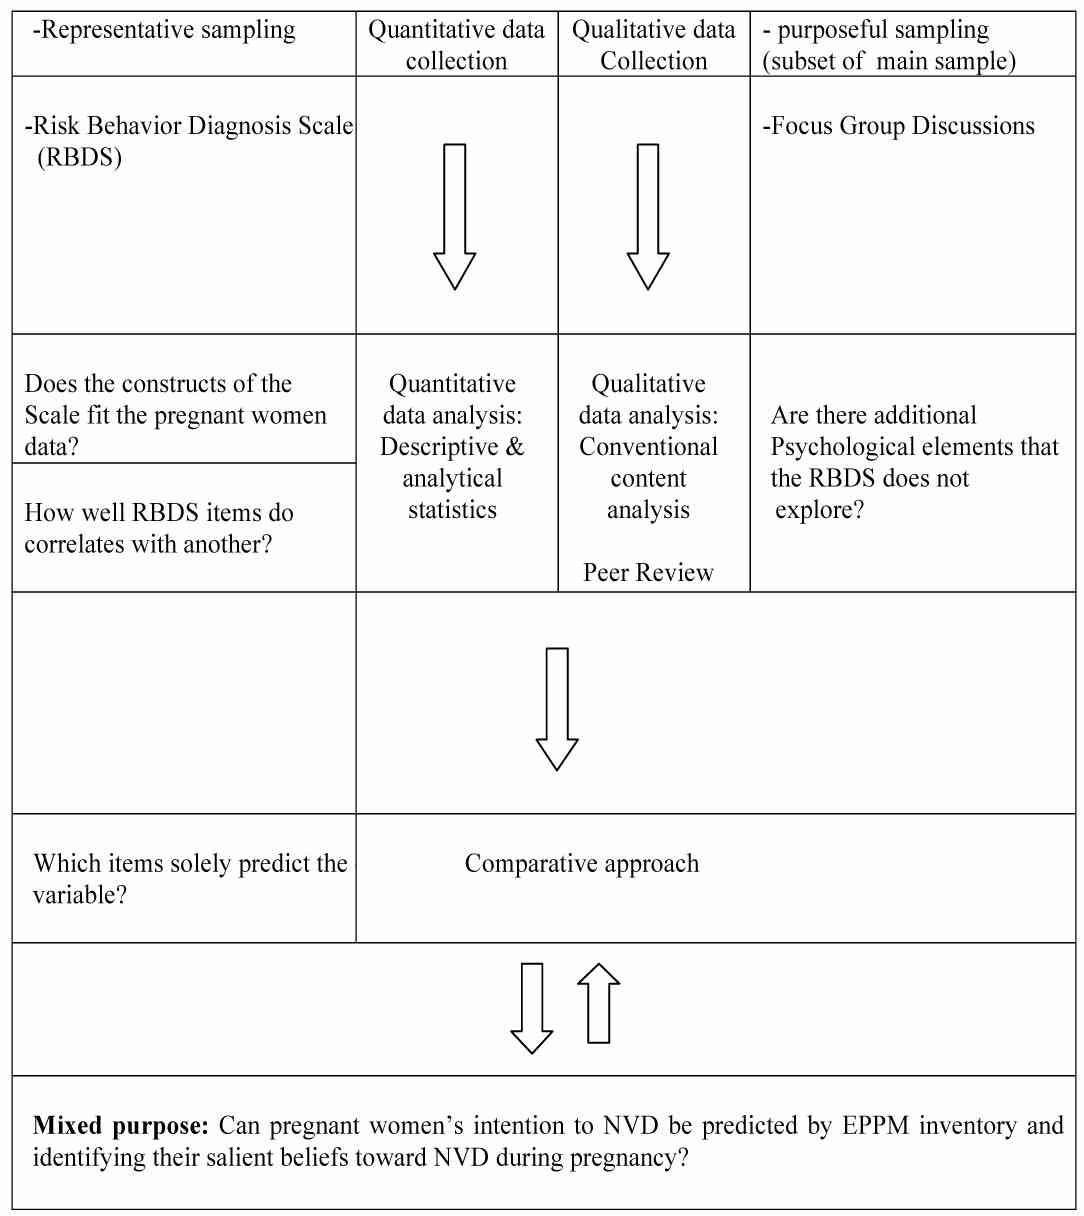 medical journal archive figure 2 study design and data analysis of the eppm prediction for intention to nvd